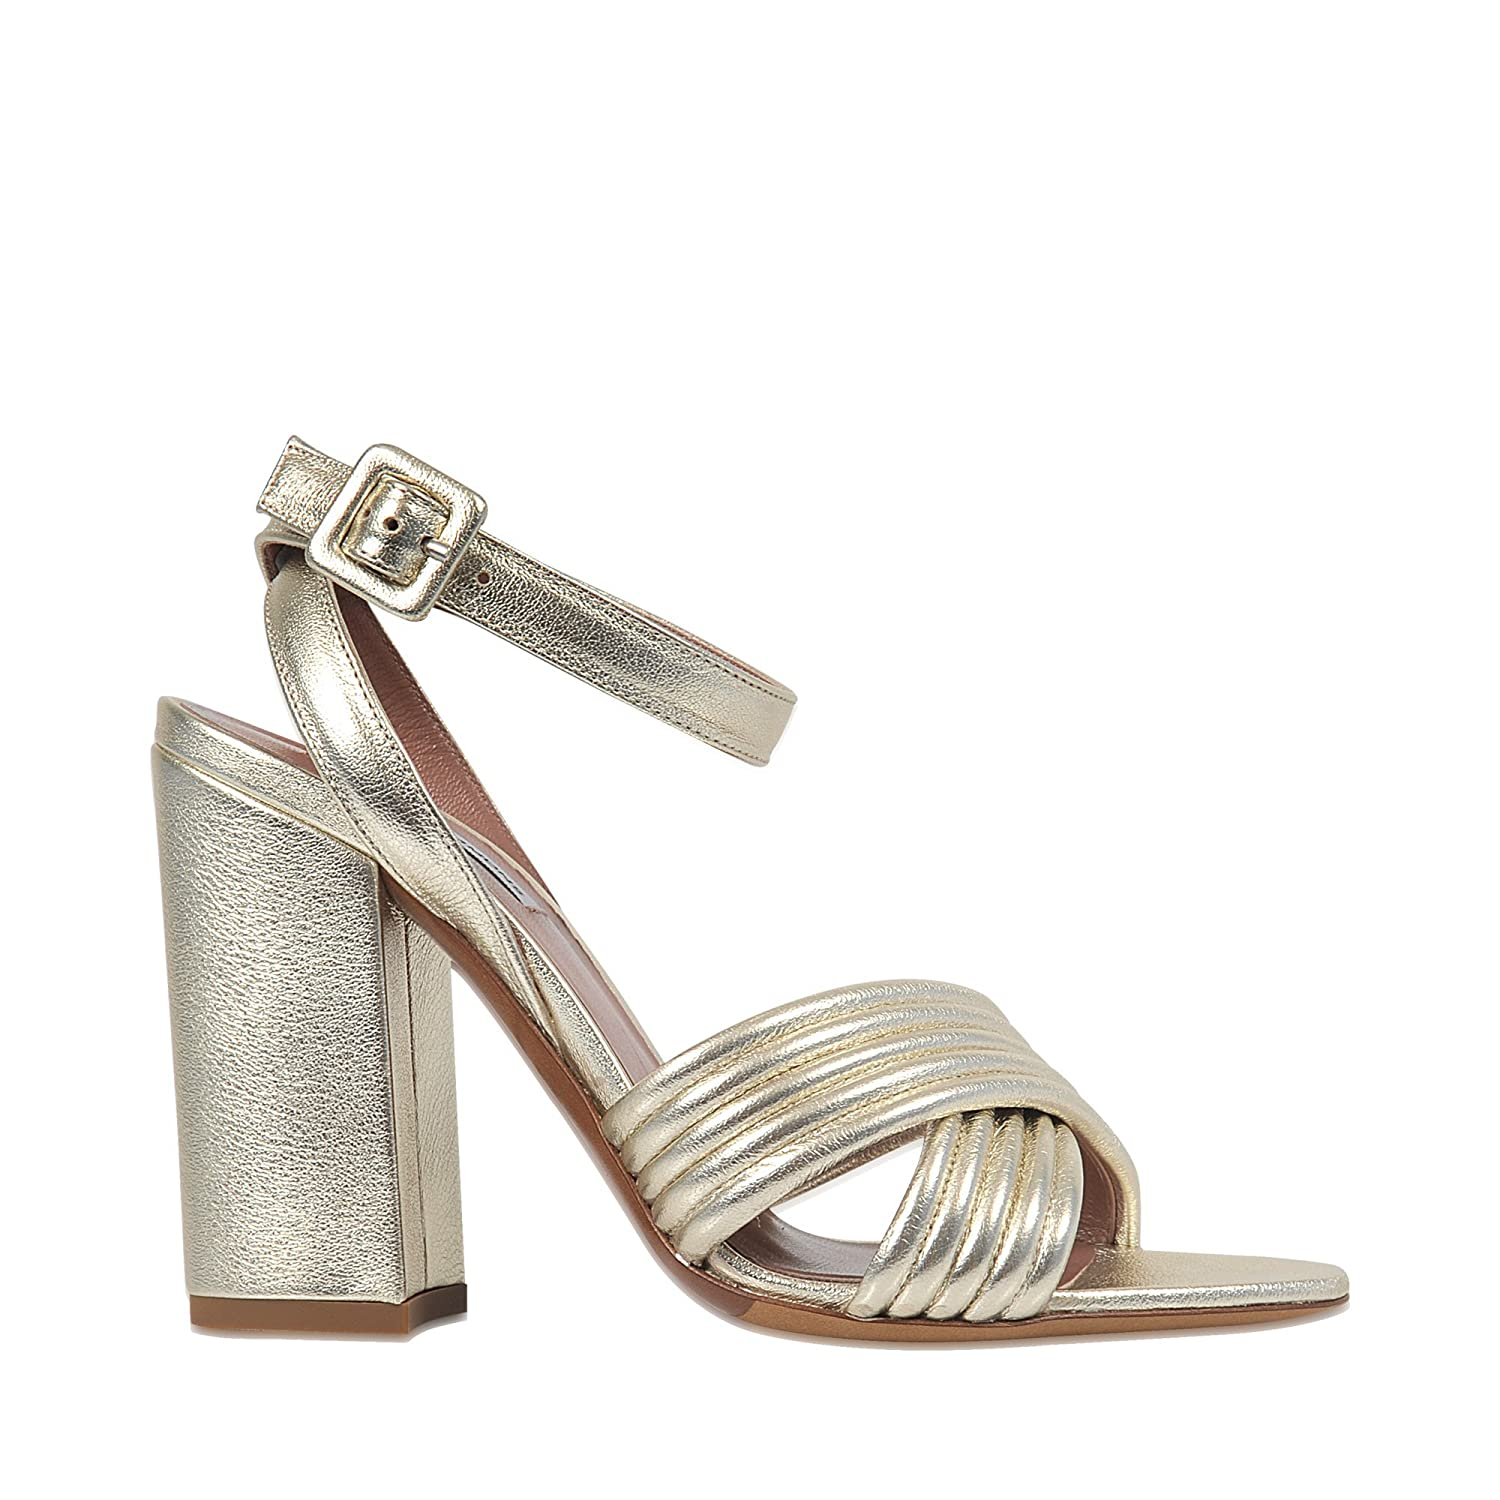 Nora cros front sandal Tabitha Simmons